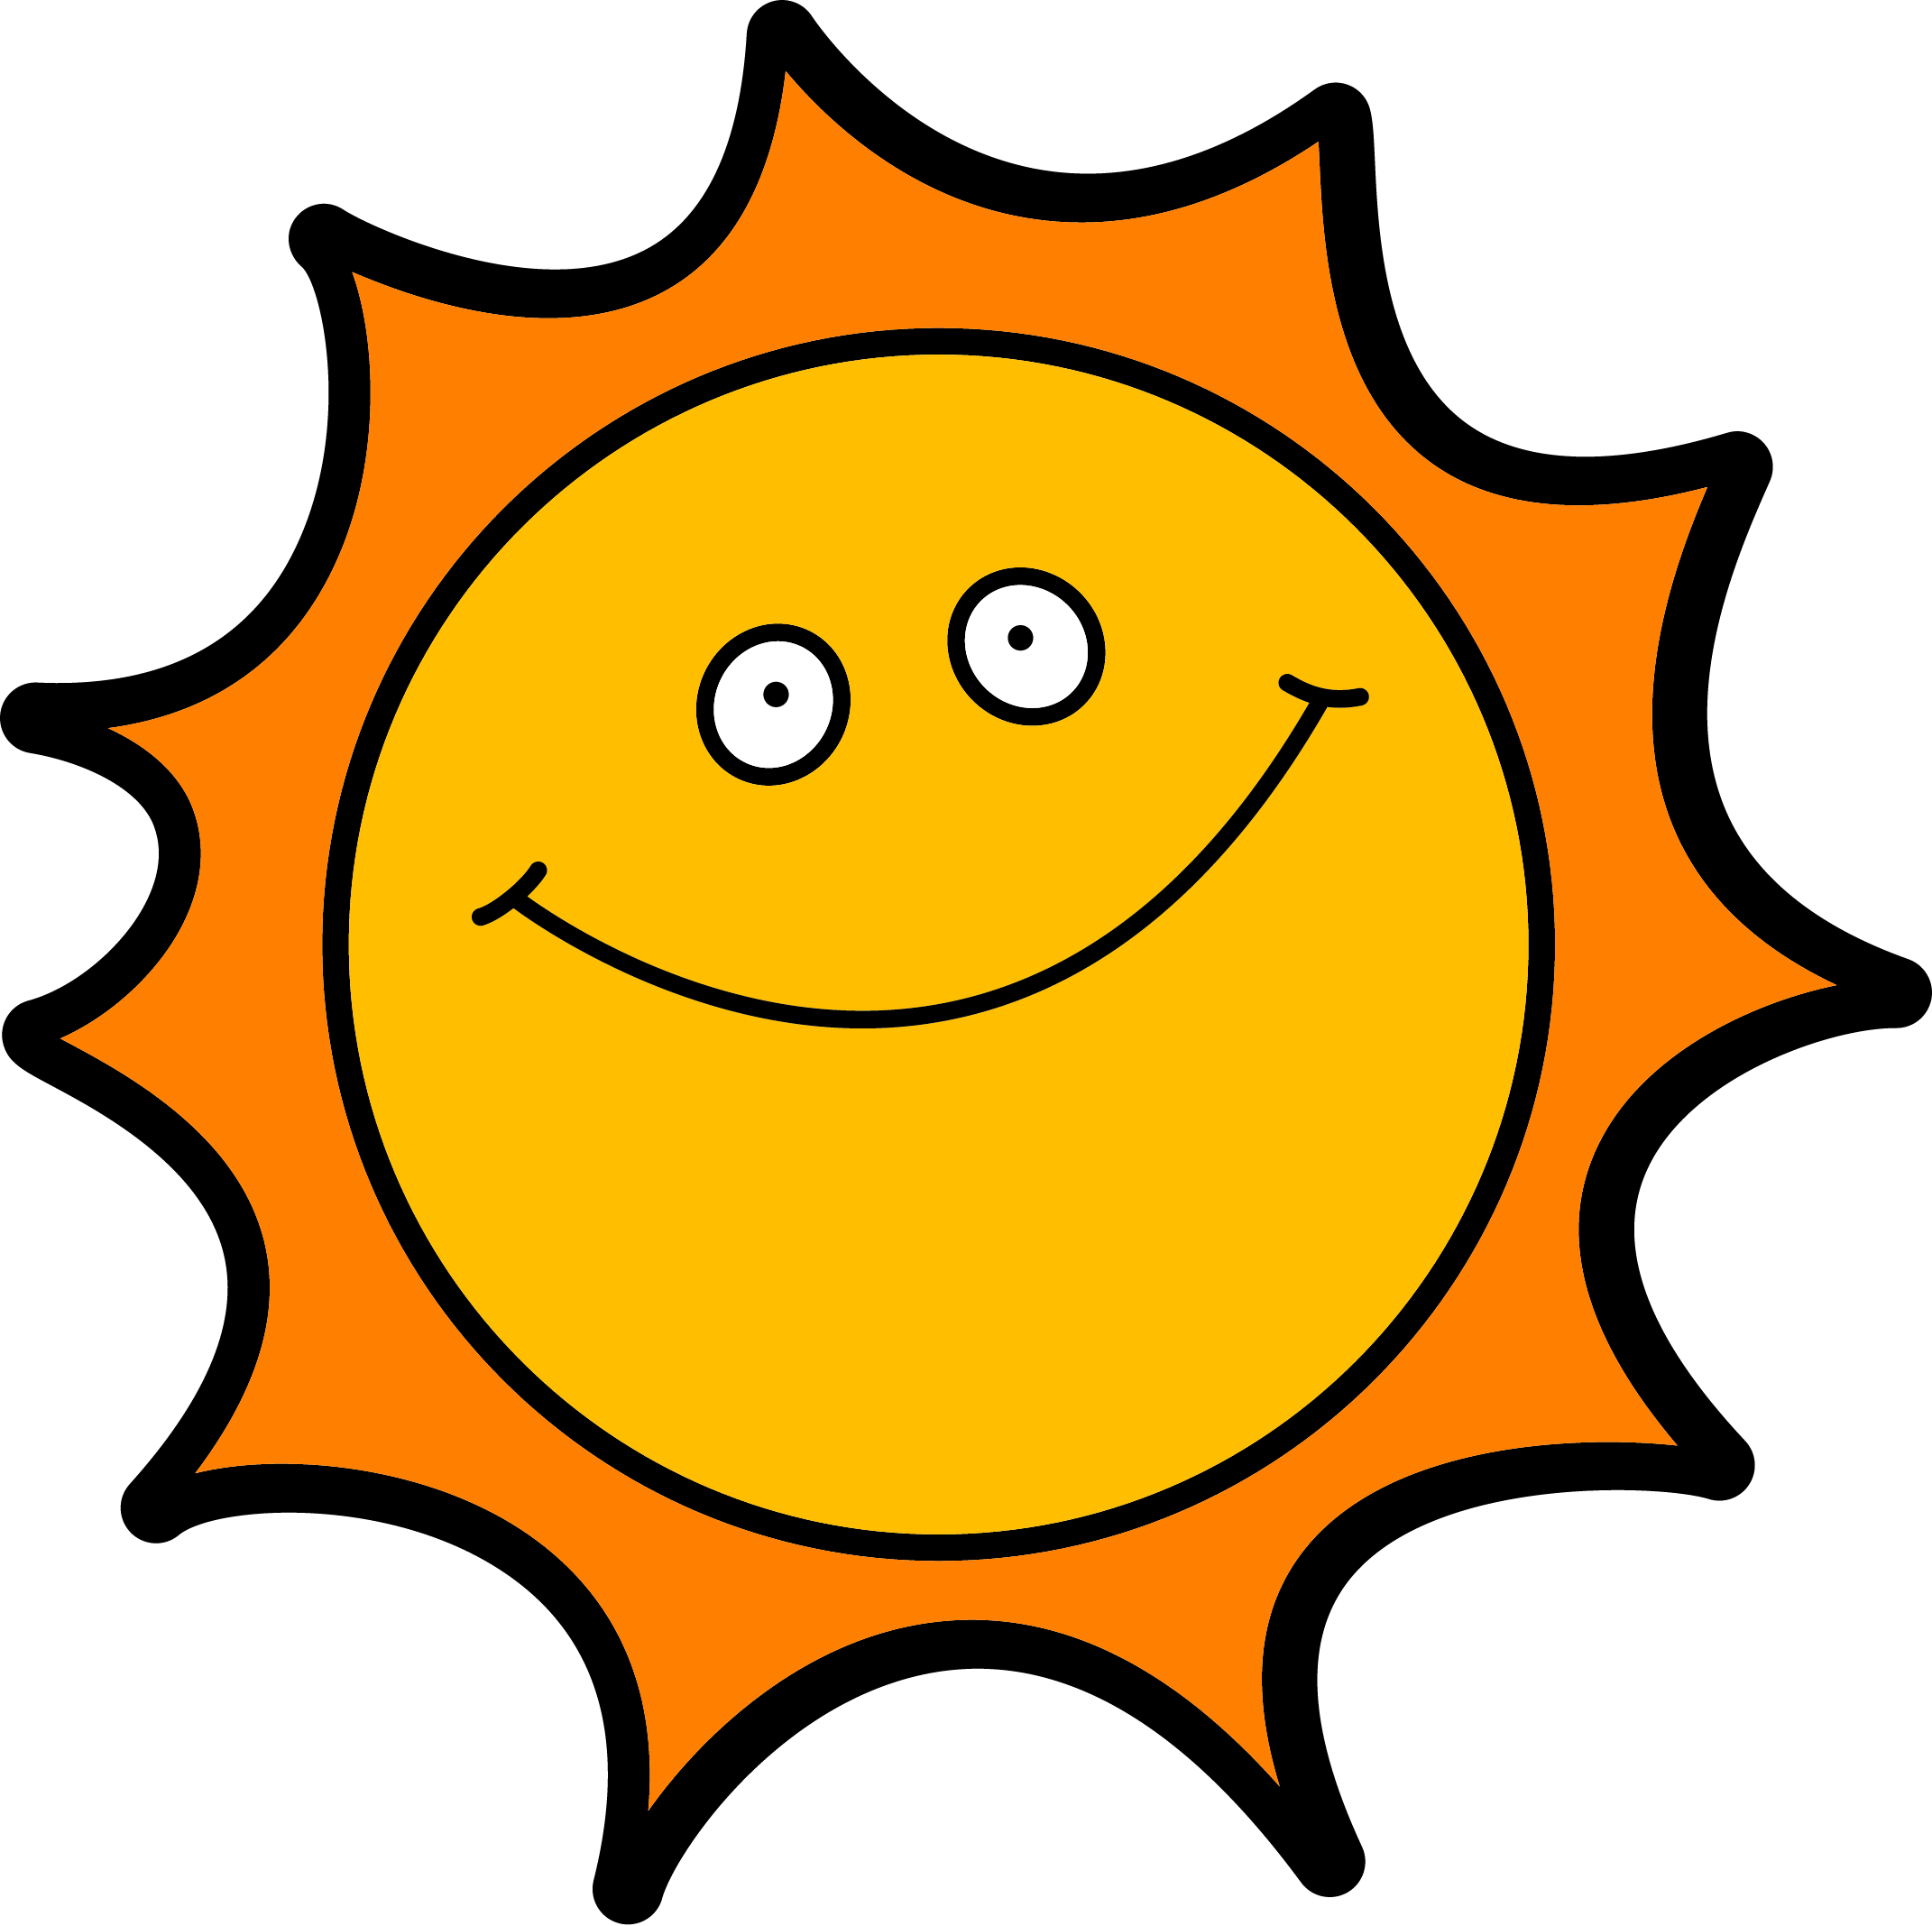 Sunshine free sun domain. Public clipart graphic royalty free download